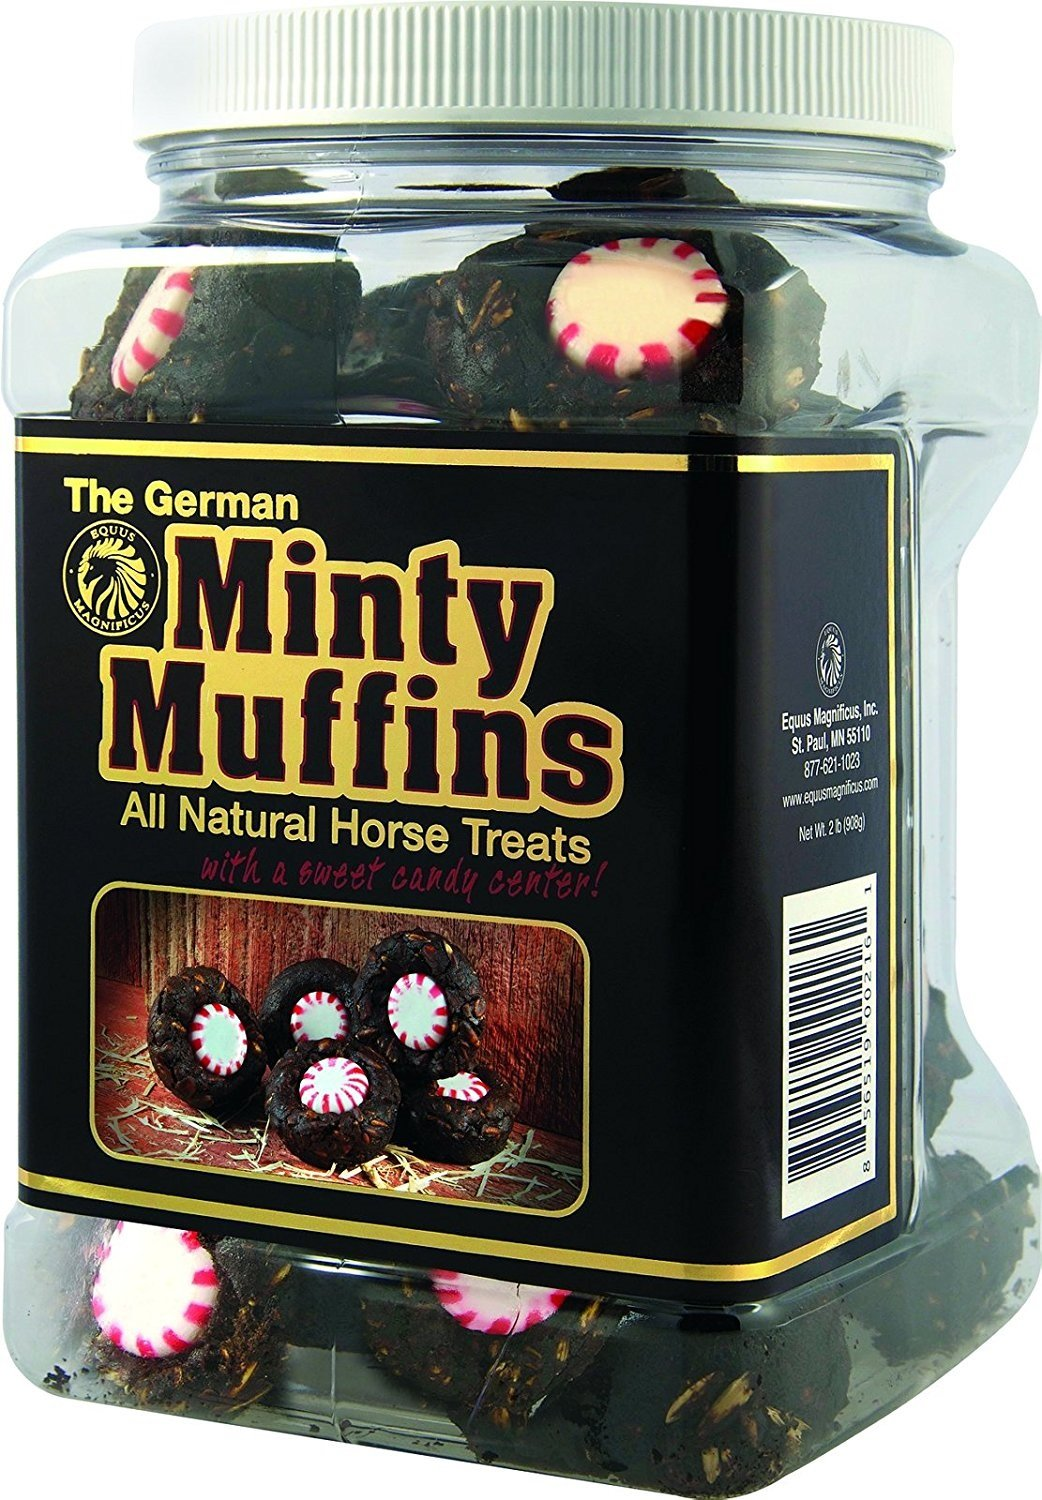 Equus Magnificus German Minty Muffins 2 lb by Equus (Image #1)